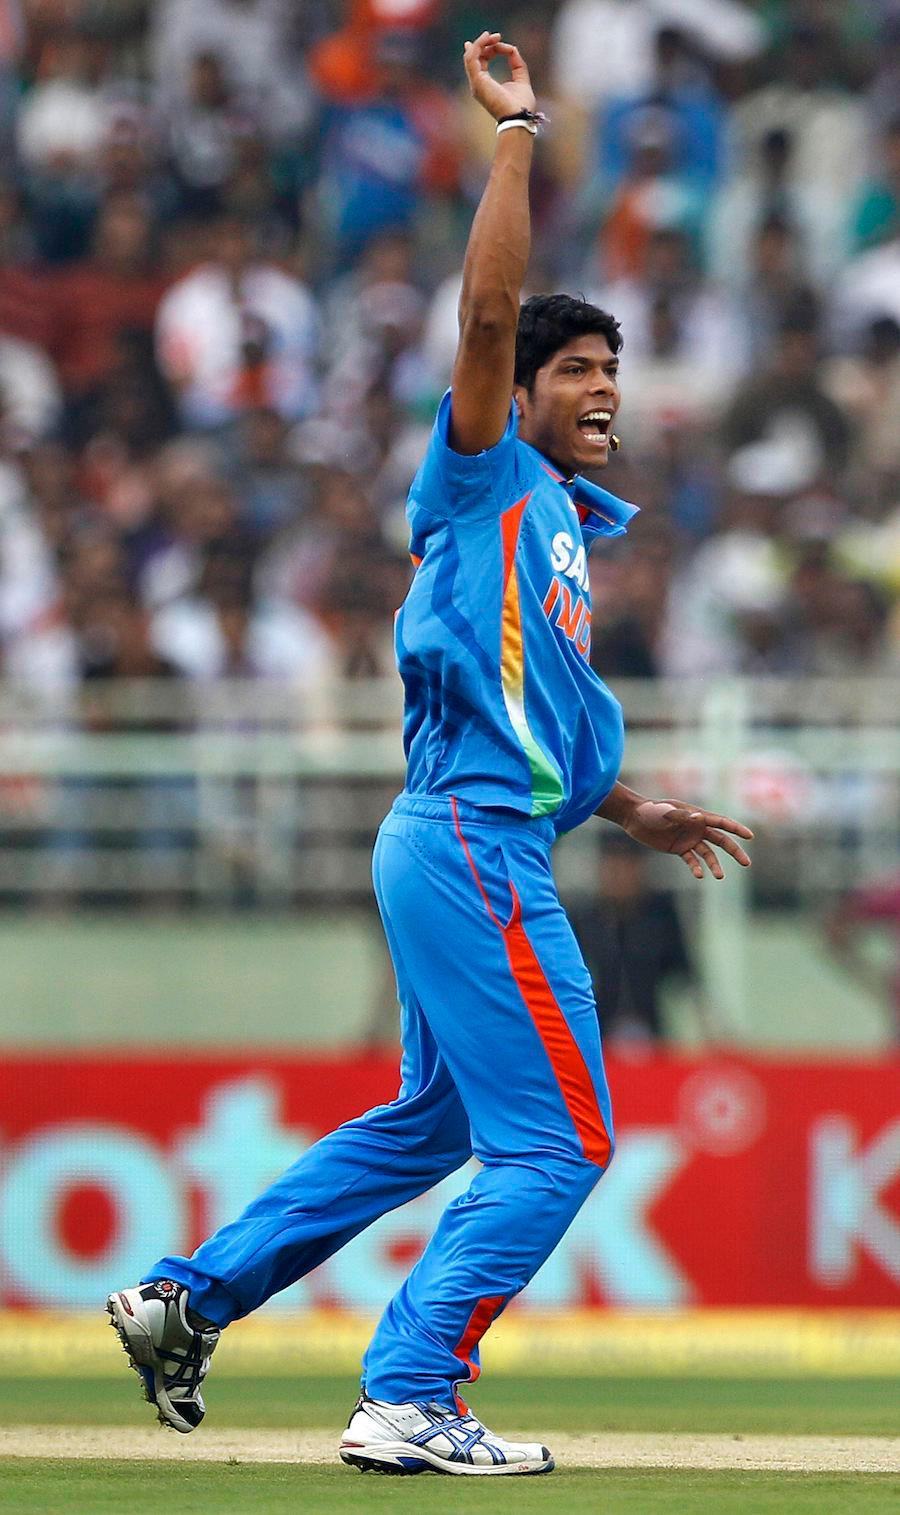 A delighted Umesh Yadav after getting a wicket. -Team Umesh